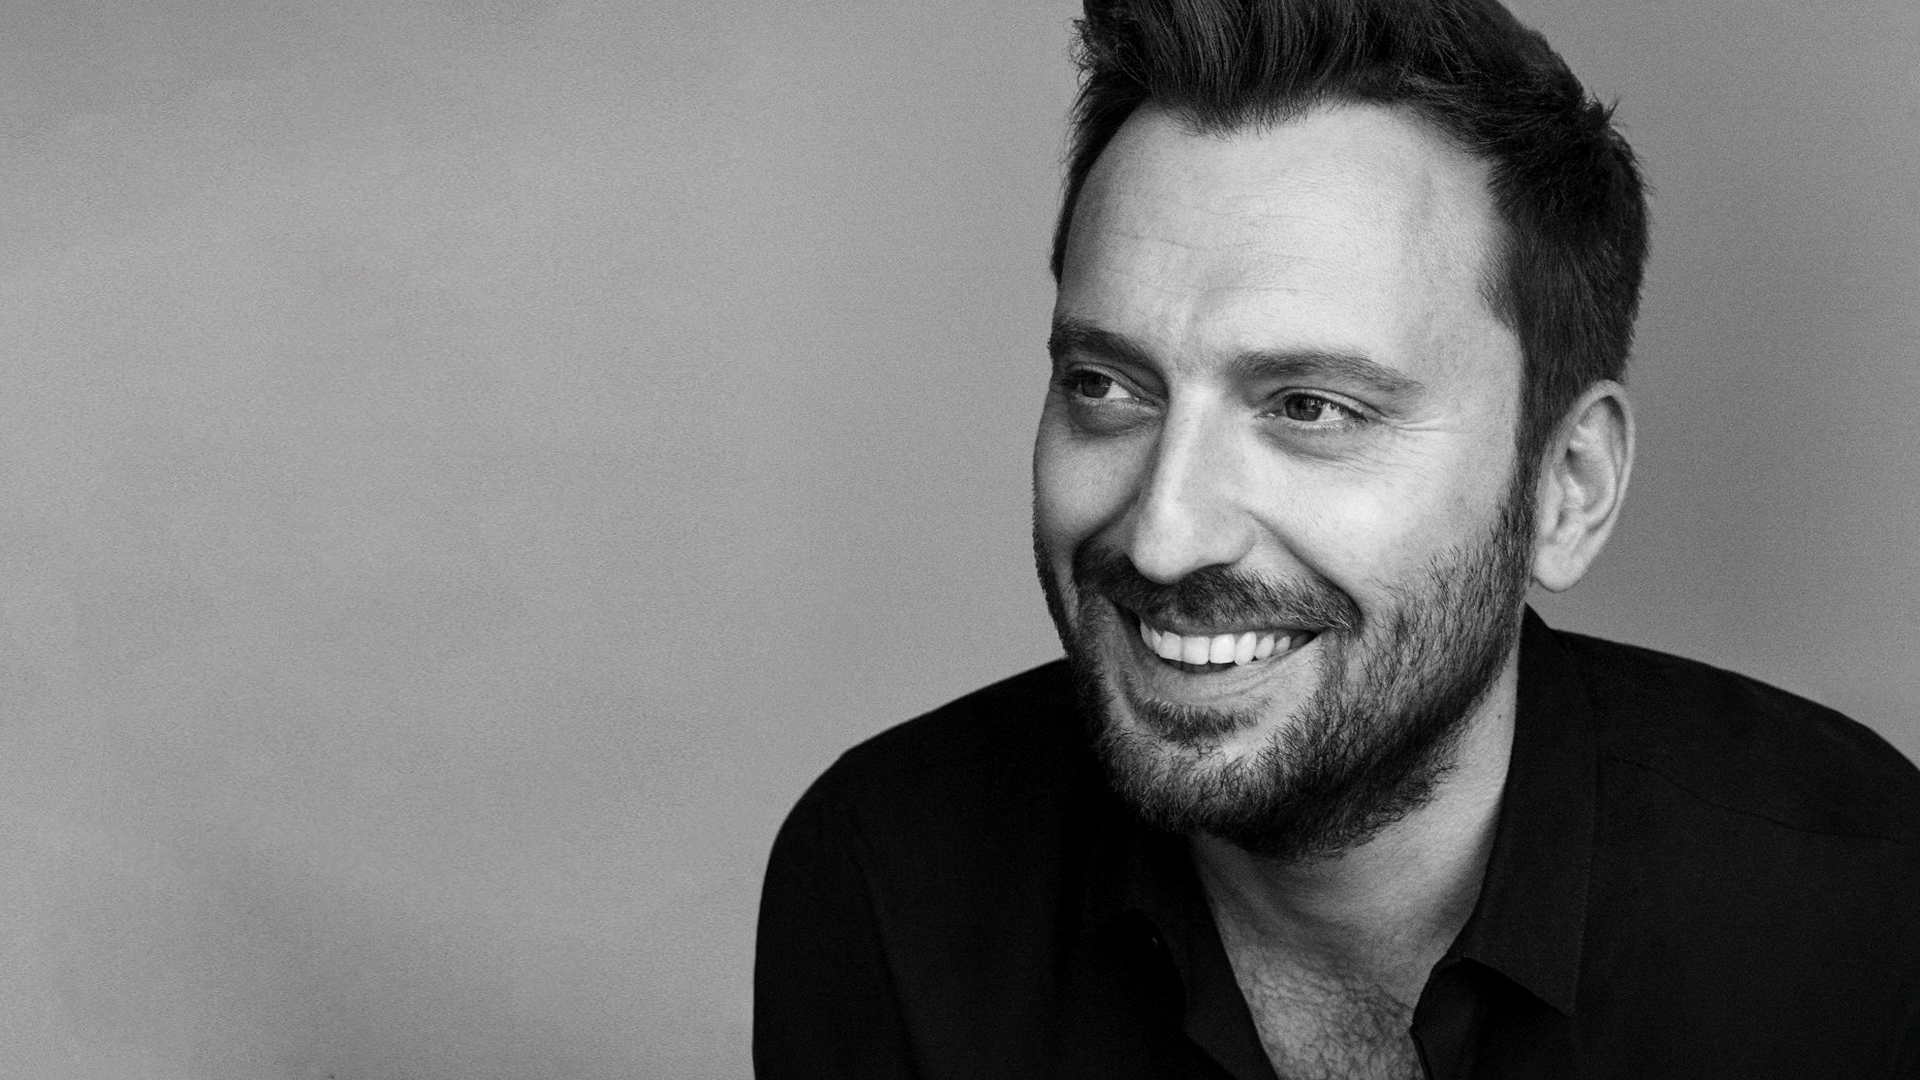 """Cremonini 2C2C The Best Of"": la nuova raccolta di Cesare Cremonini"